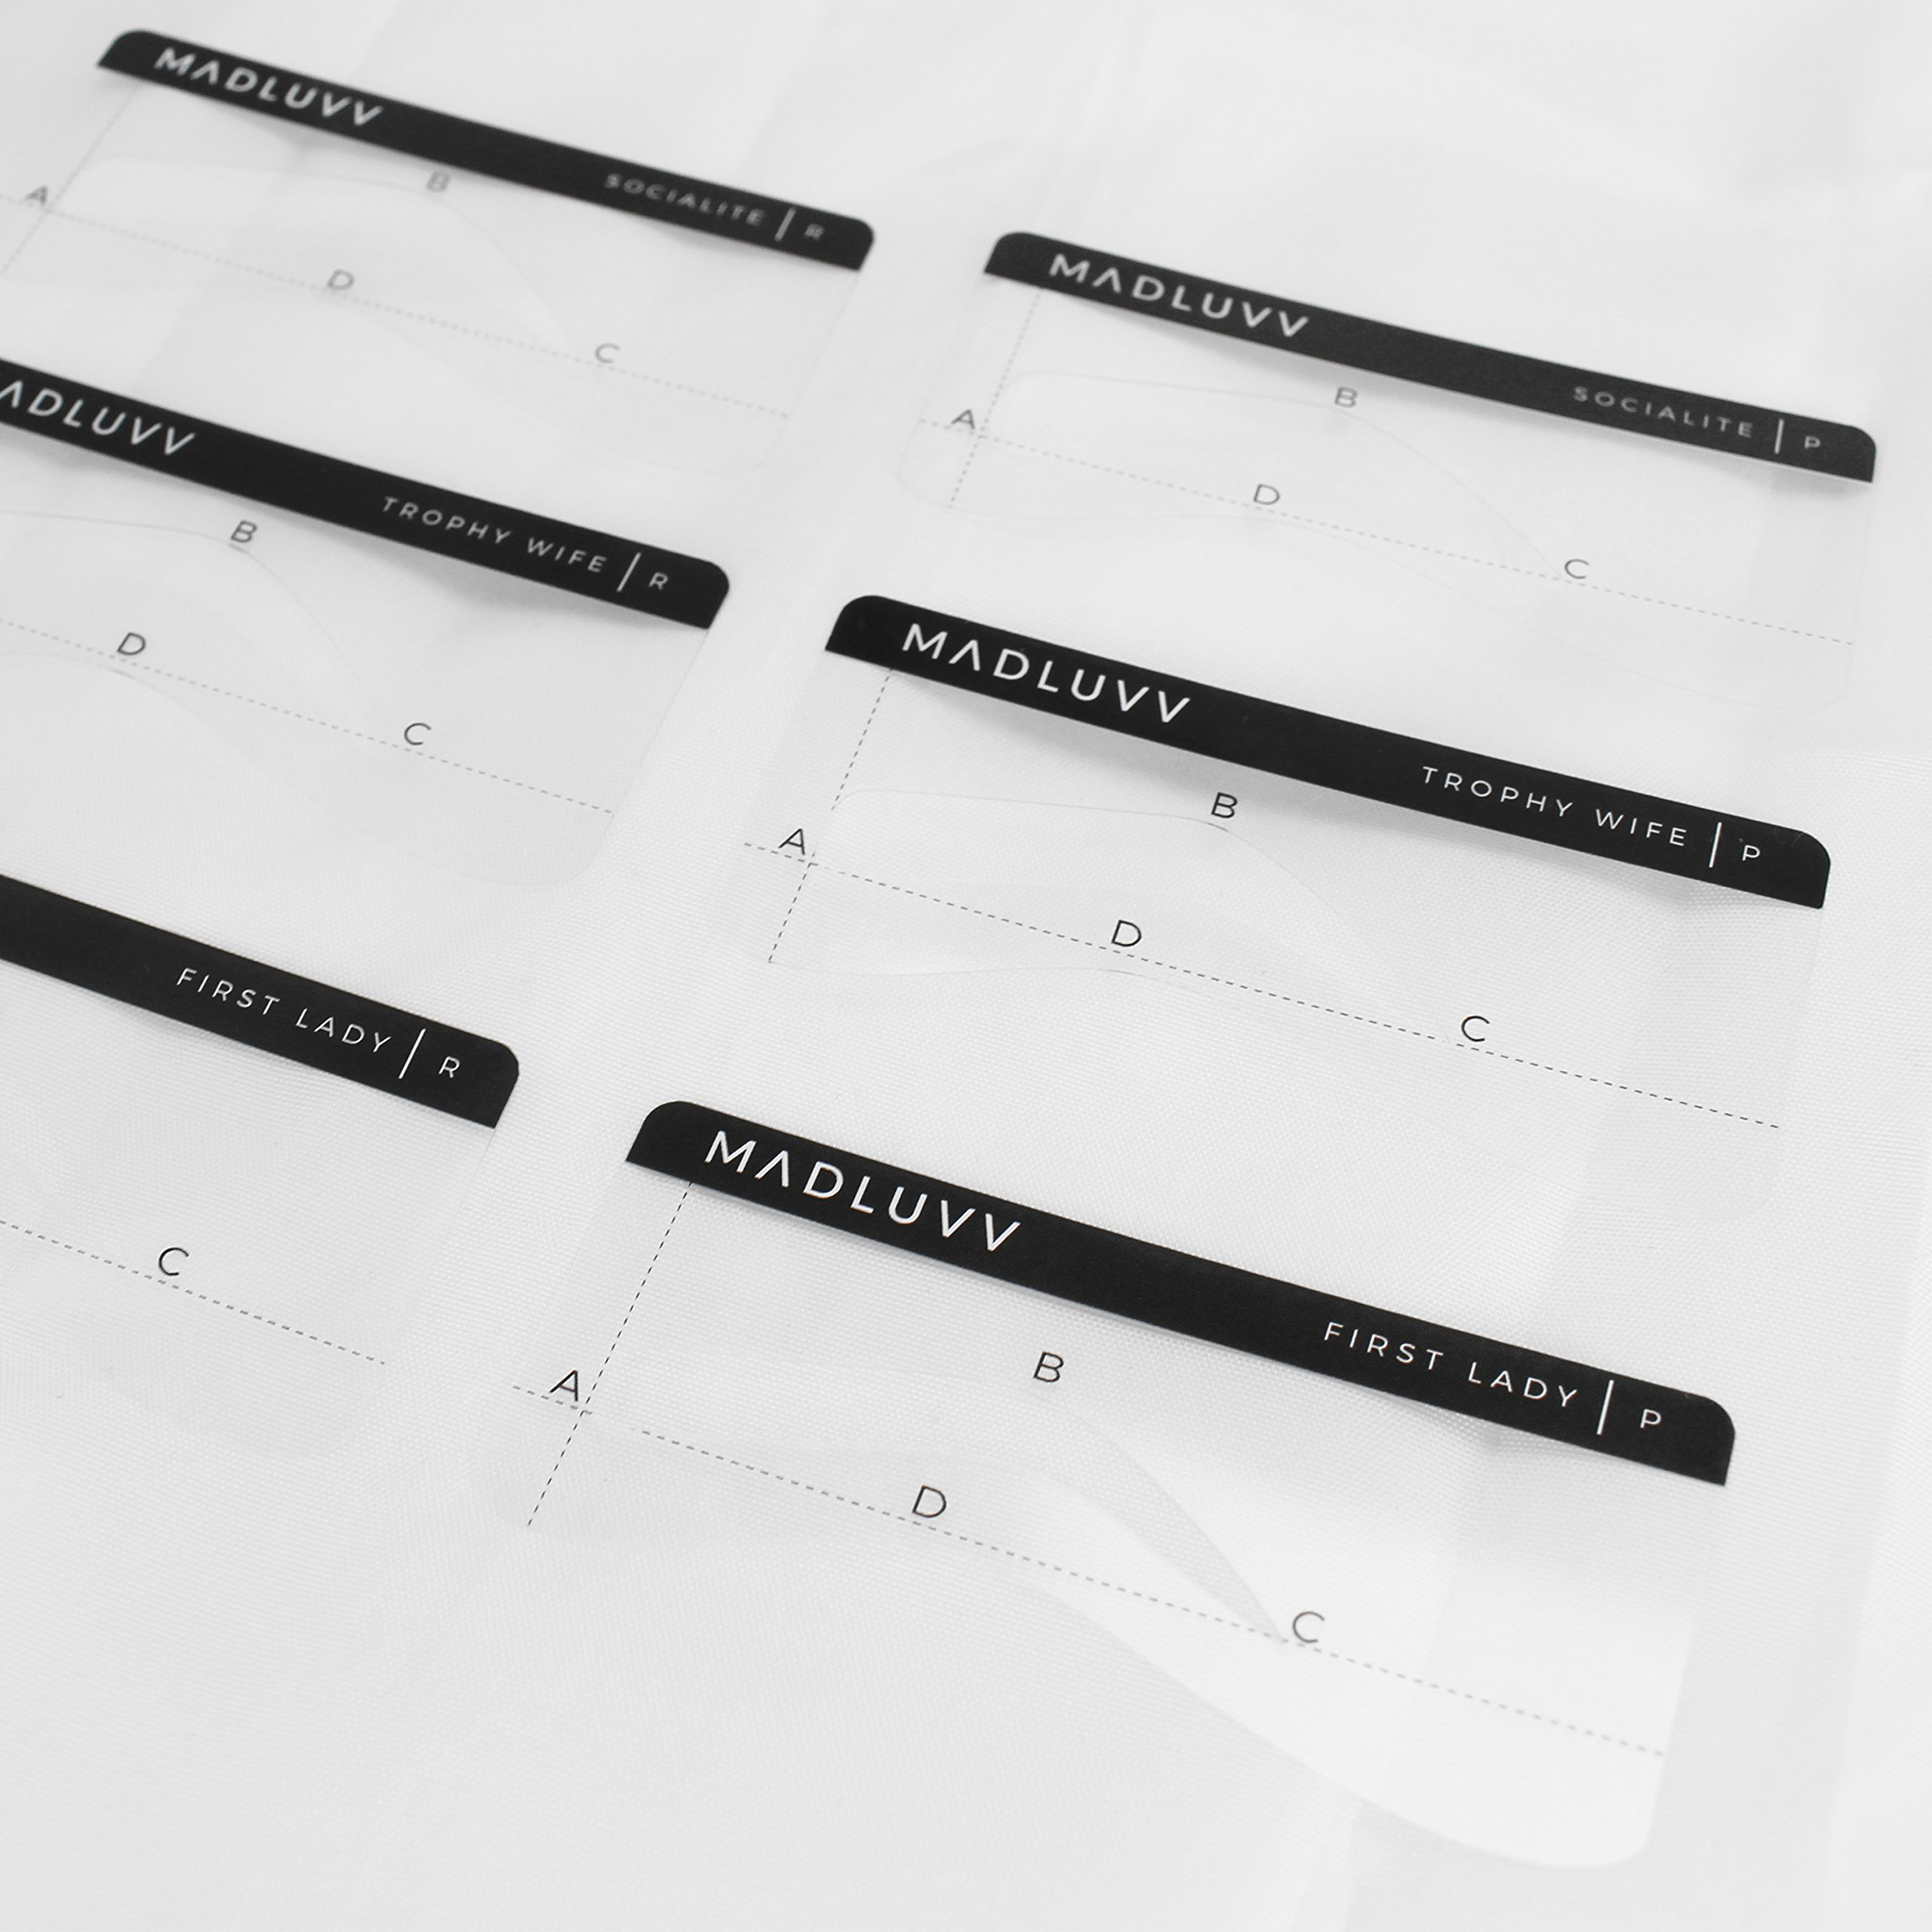 Best Eyebrow Shaping Stencil Kit, Set of 6 Plastic Reusable Stencils for Semi Permanent Microblading Tattoo & Makeup Artists, Draw & Shape Thicker and Fuller Brows with Eyeliner Pencil & Micro Blades